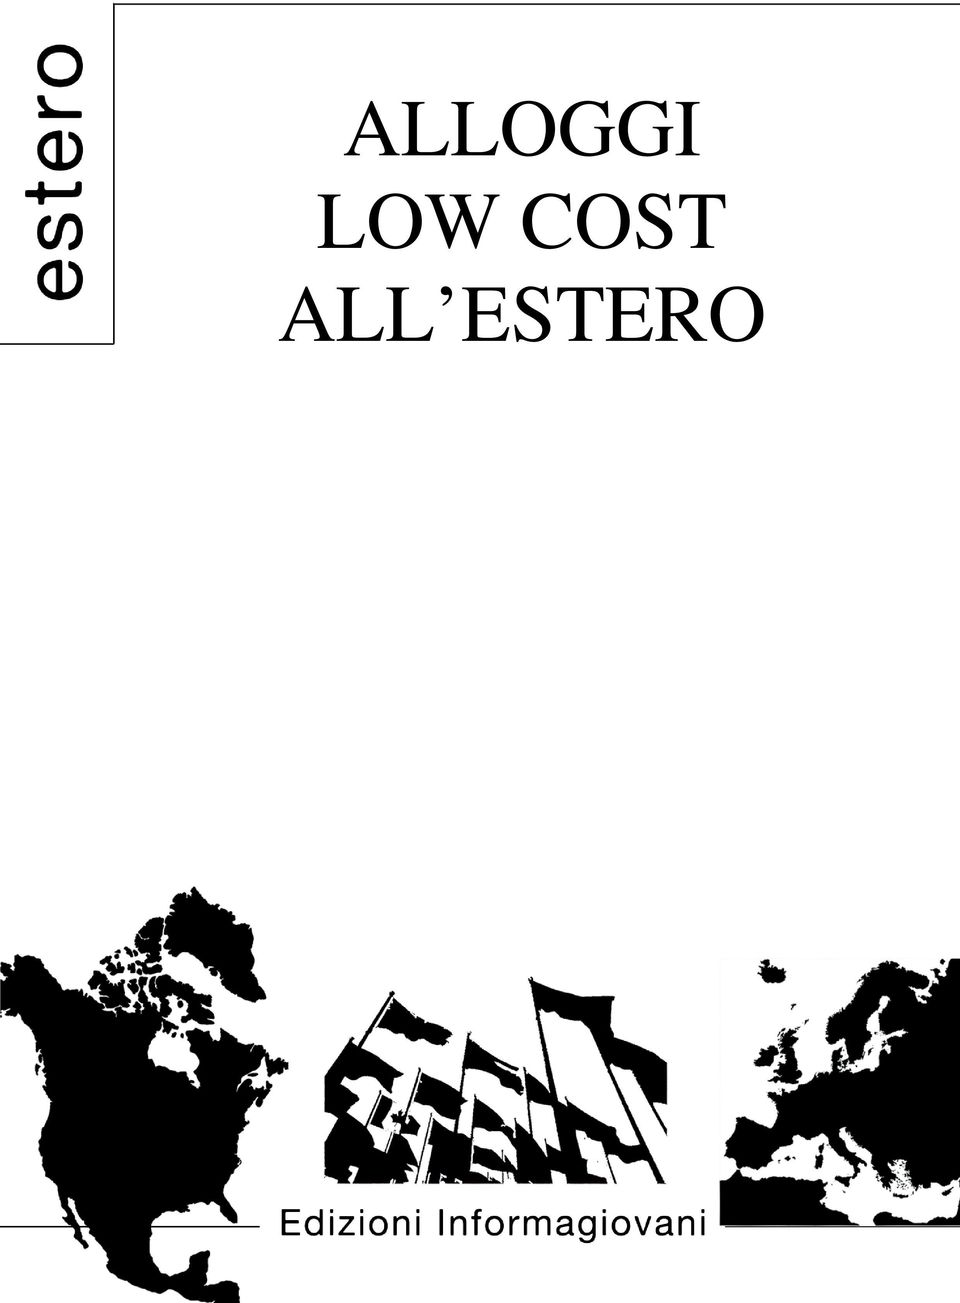 alloggi low cost all estero pdf